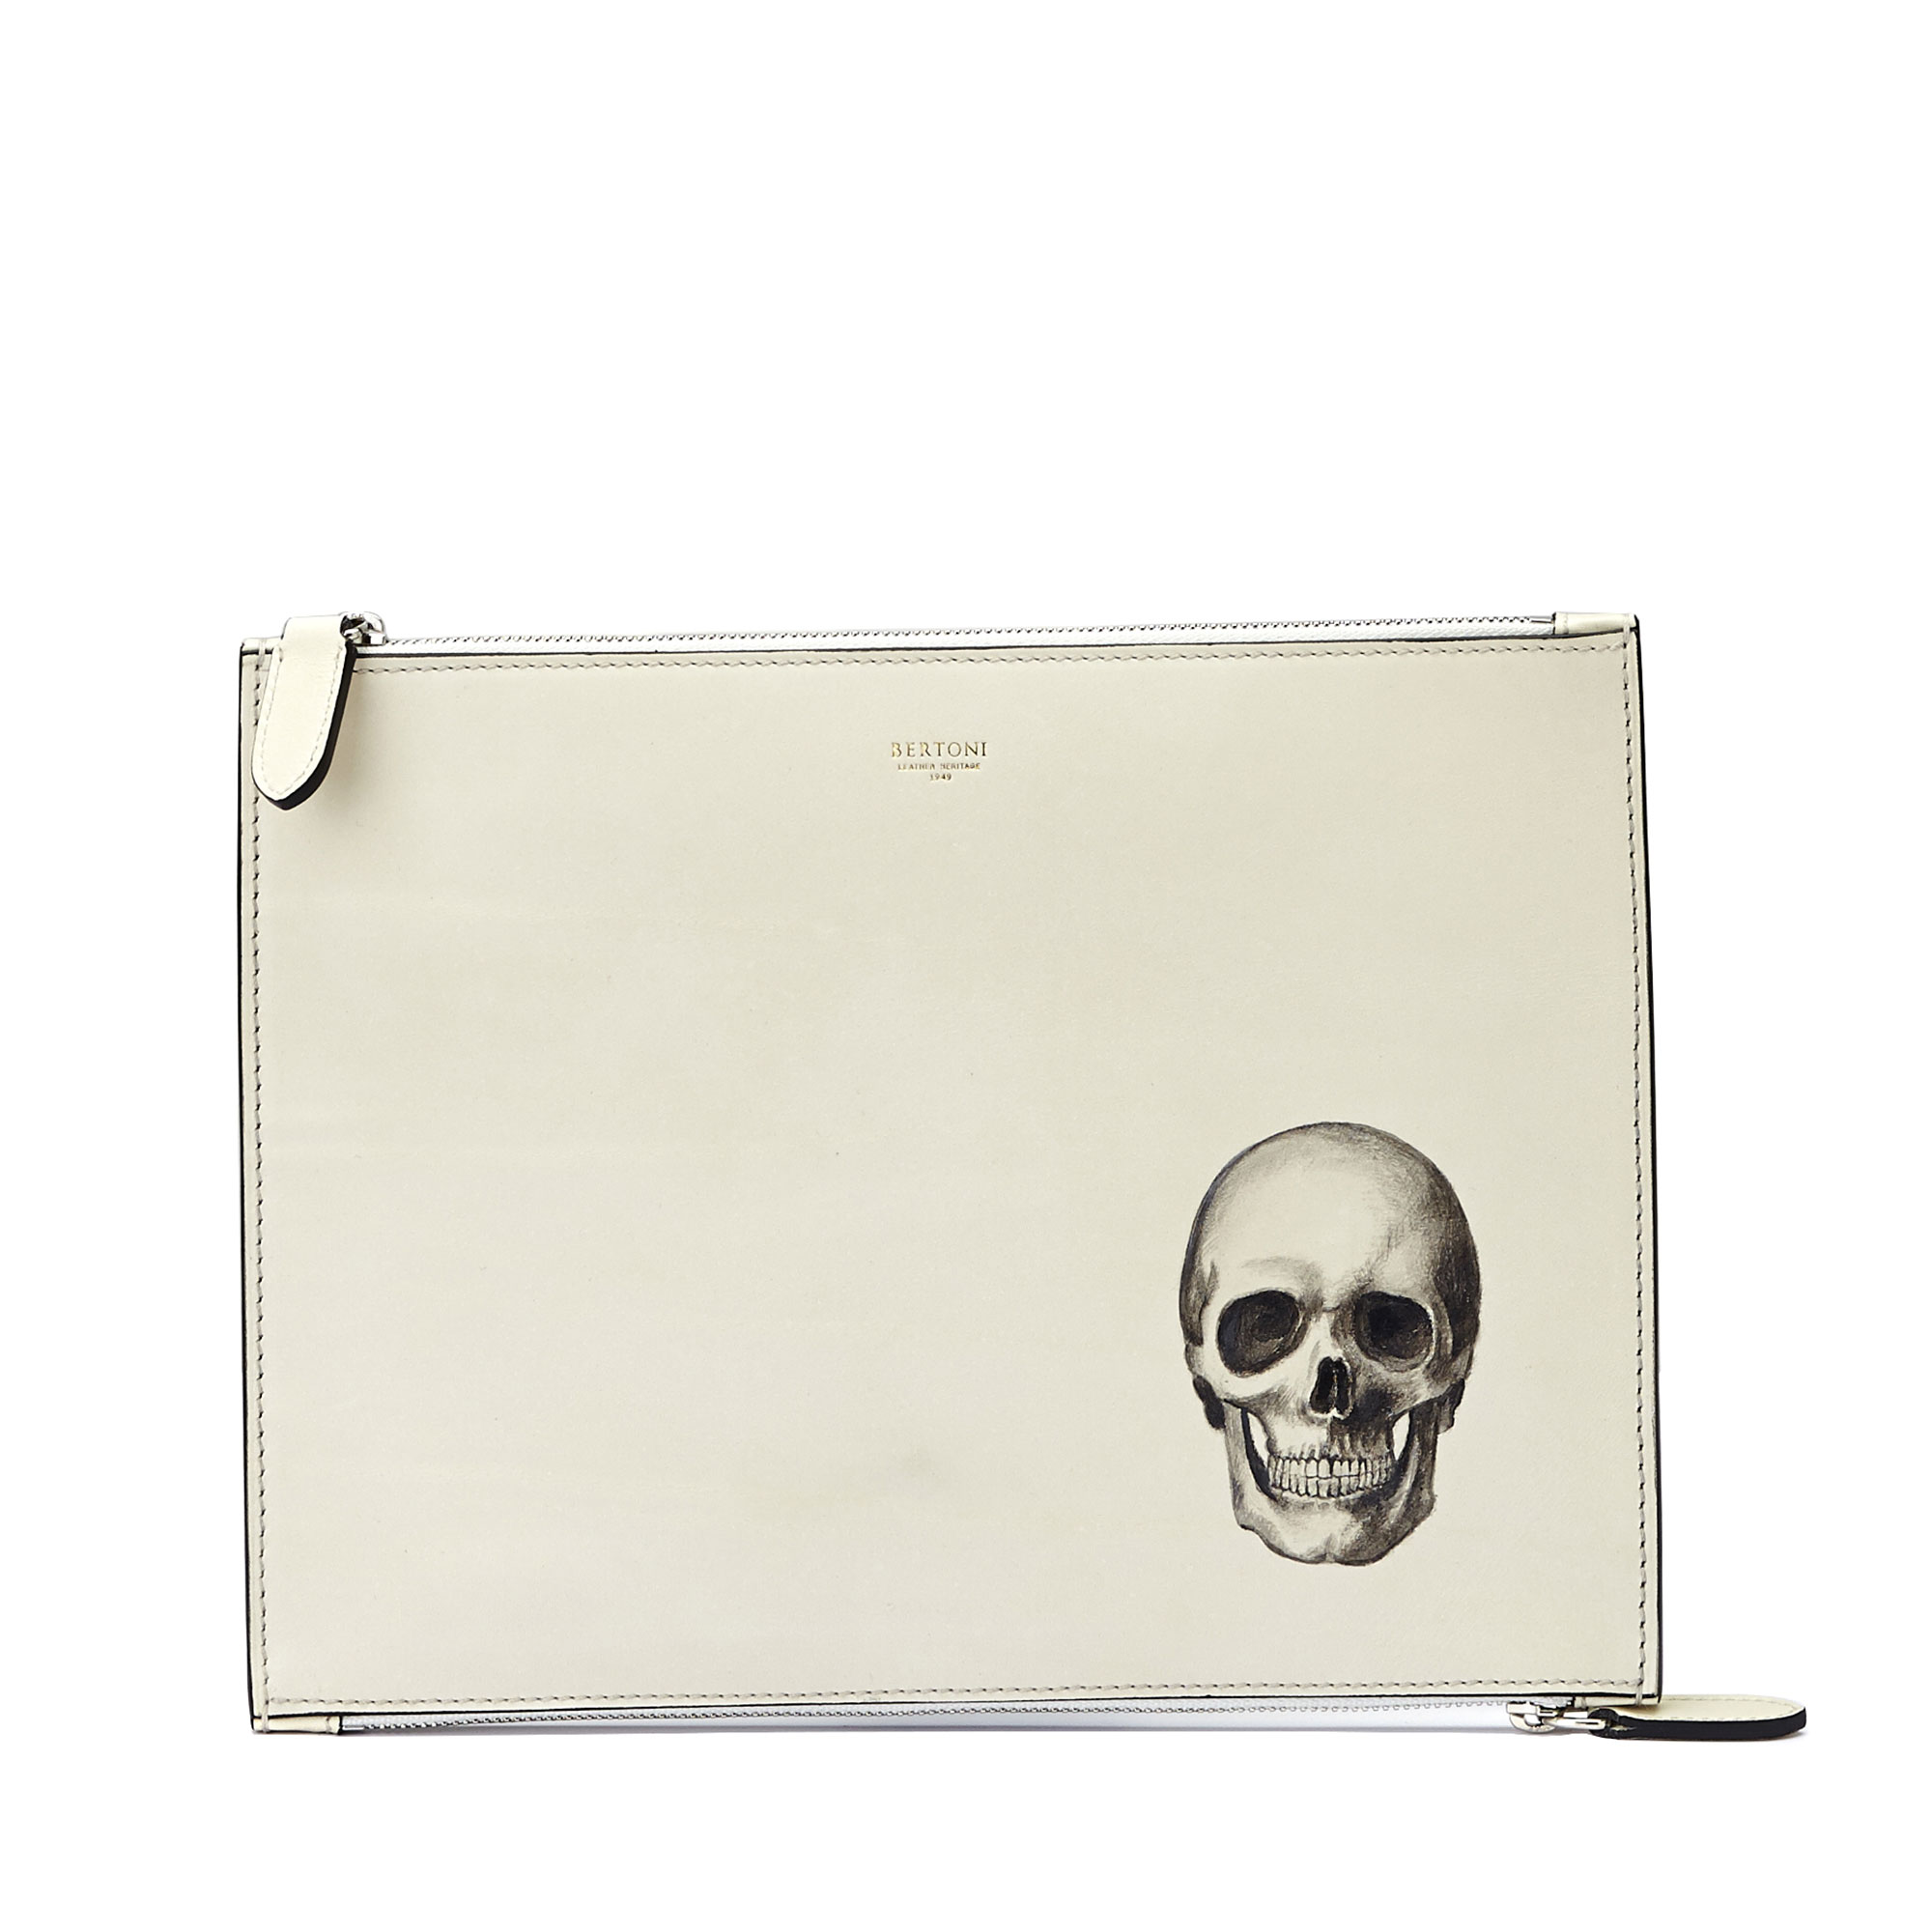 The Ivory with skull french calf Zip Pouch by Bertoni 1949 01